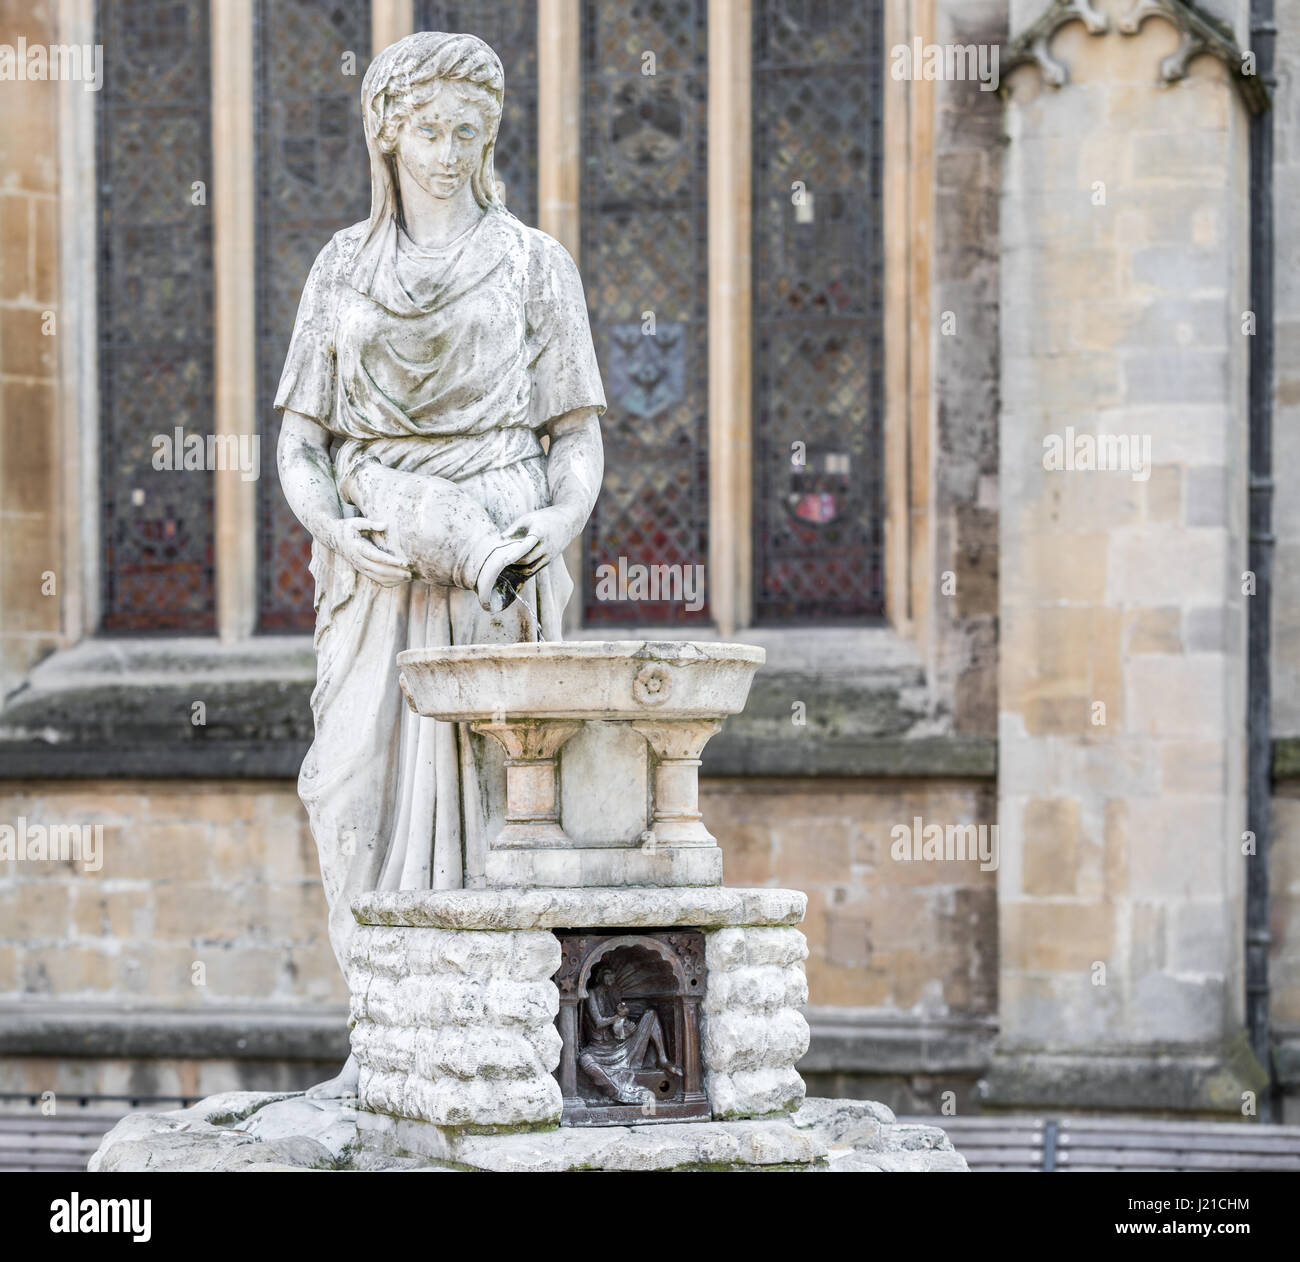 an old fountain in the city of Bath England, UK Stock Photo